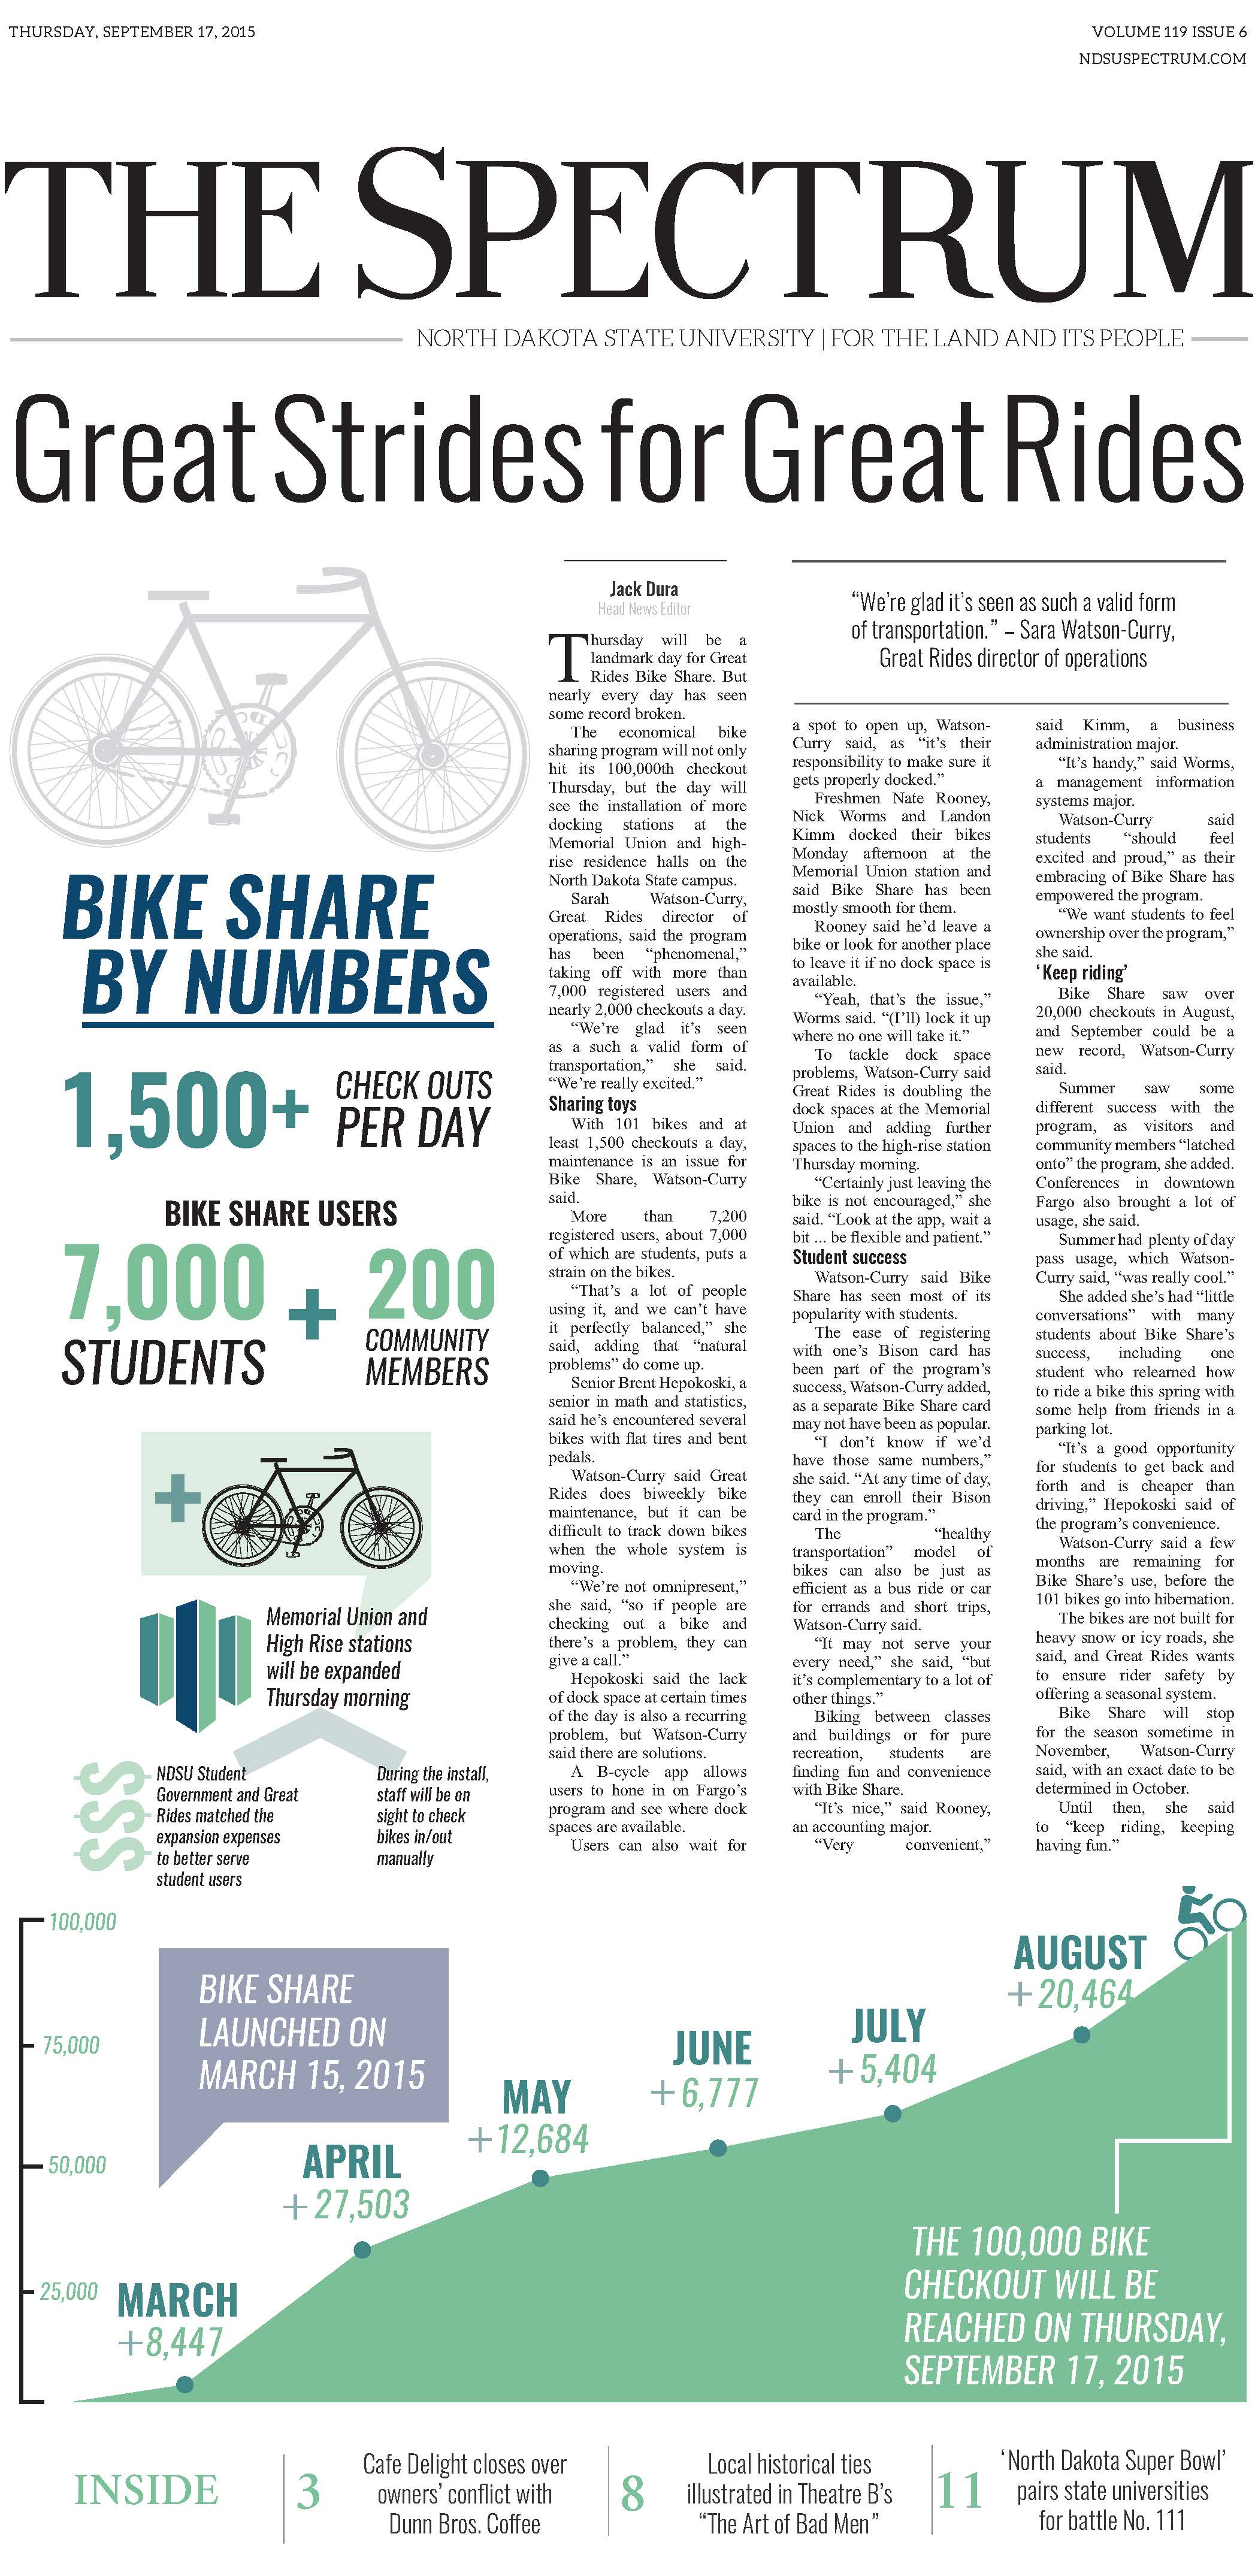 - Stats on recently launched the city-wide bike-share program